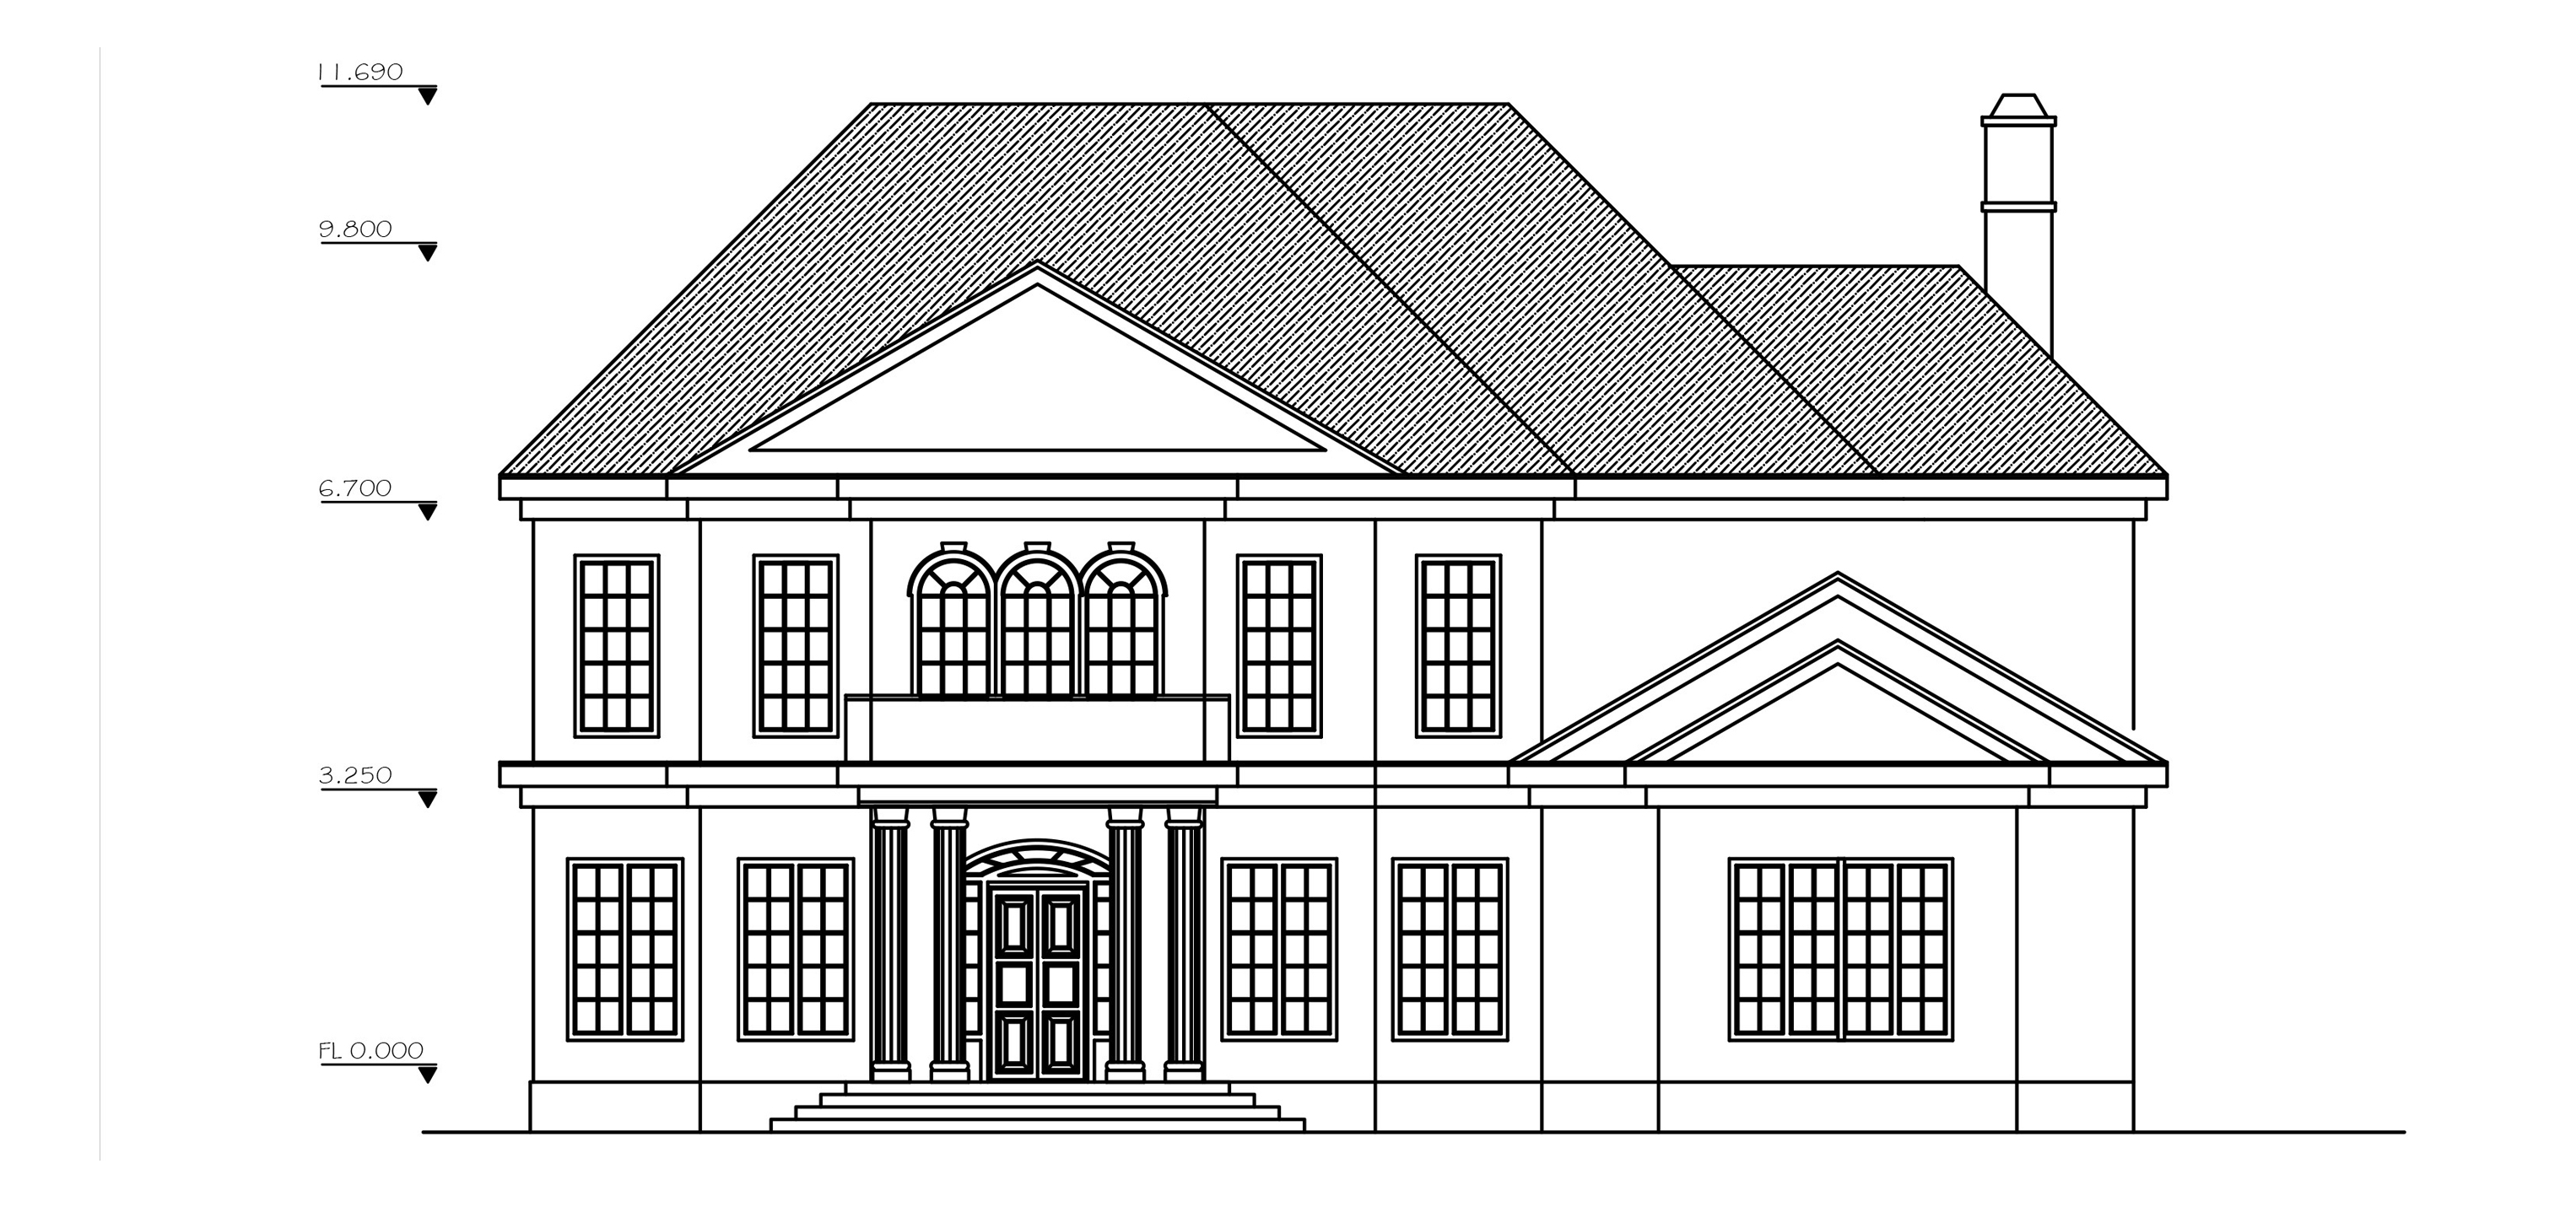 Front Elevation Plan Dwg : Double story archives dwg net cad blocks and house plans